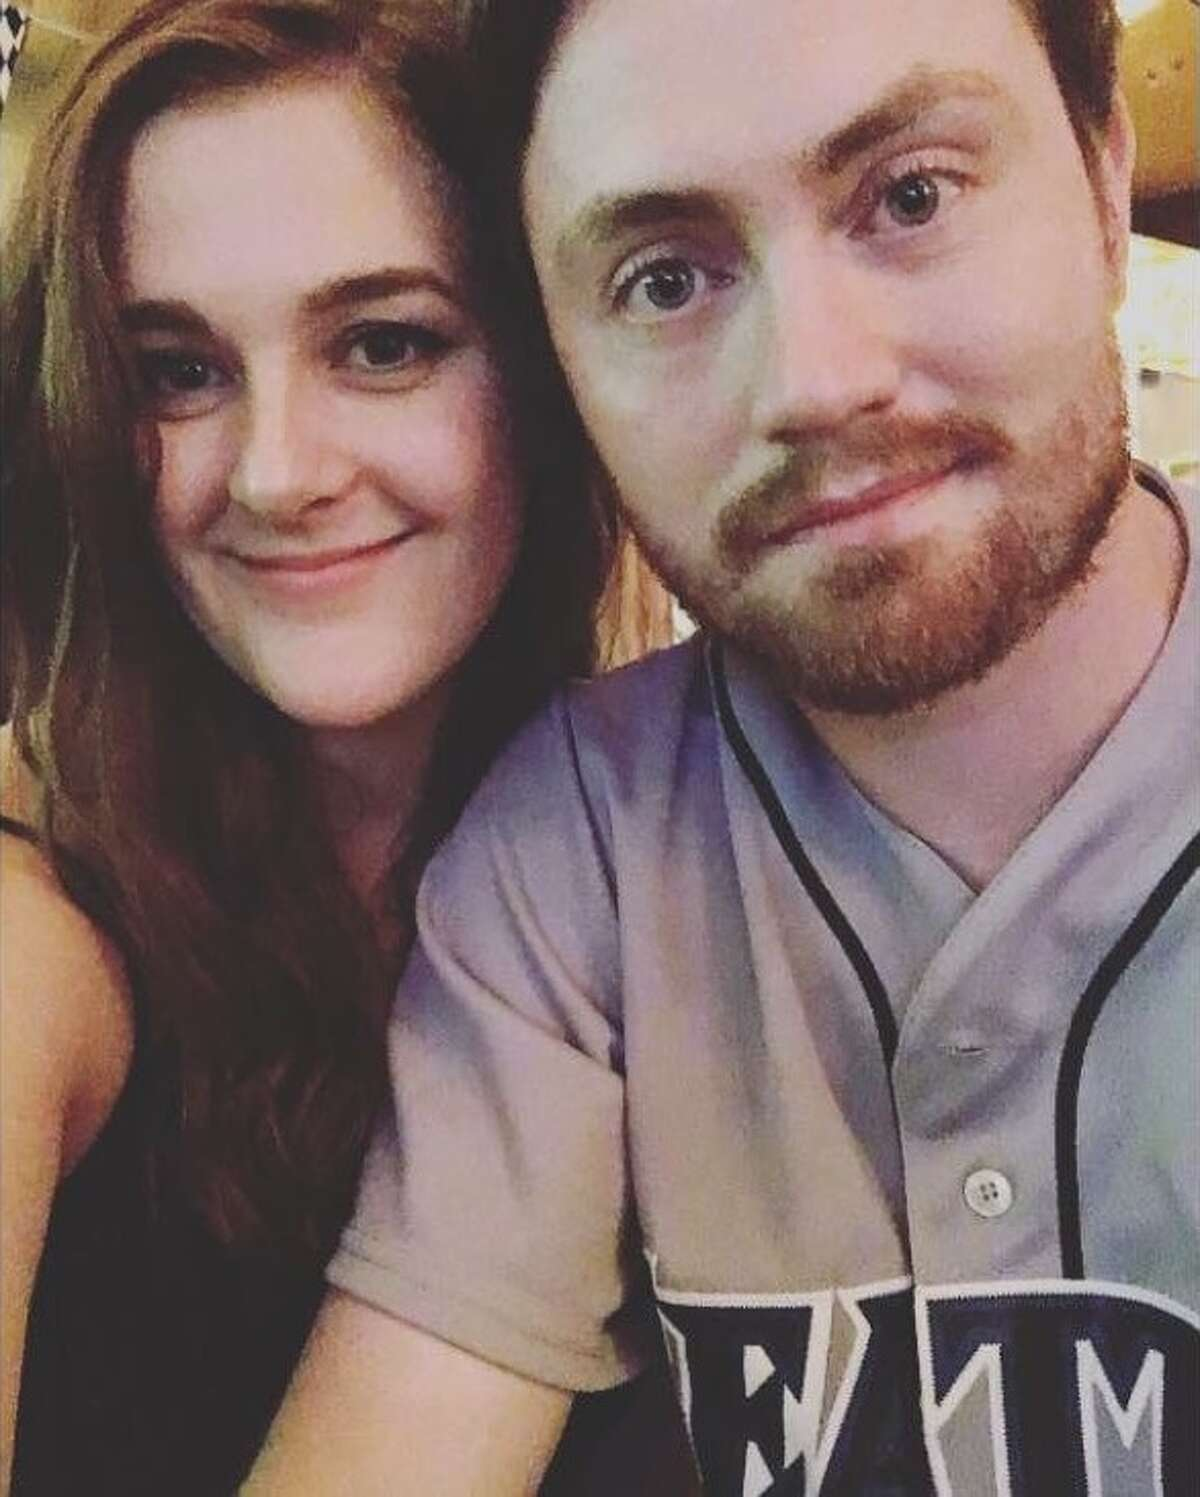 Pat Cushing and his girlfriend, Amanda Halse, were both killed in the limo crash in Schoharie on Oct. 6, 2018.